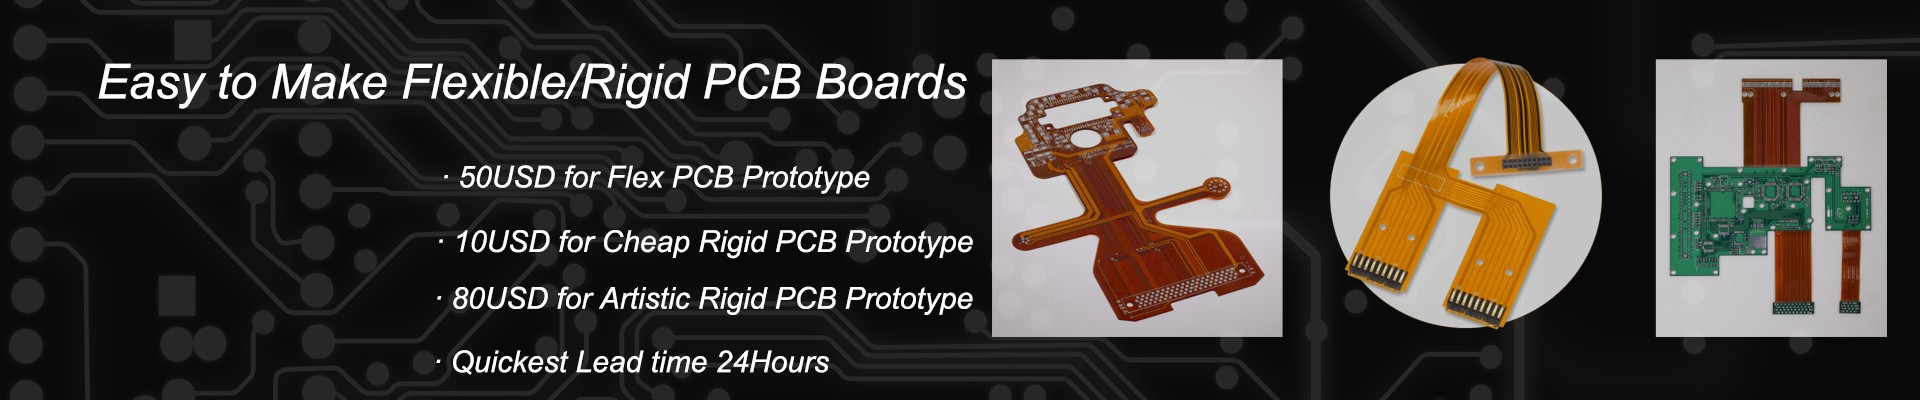 low cost Flex/Rigid PCB Prototype and Small Production | LinkedIn